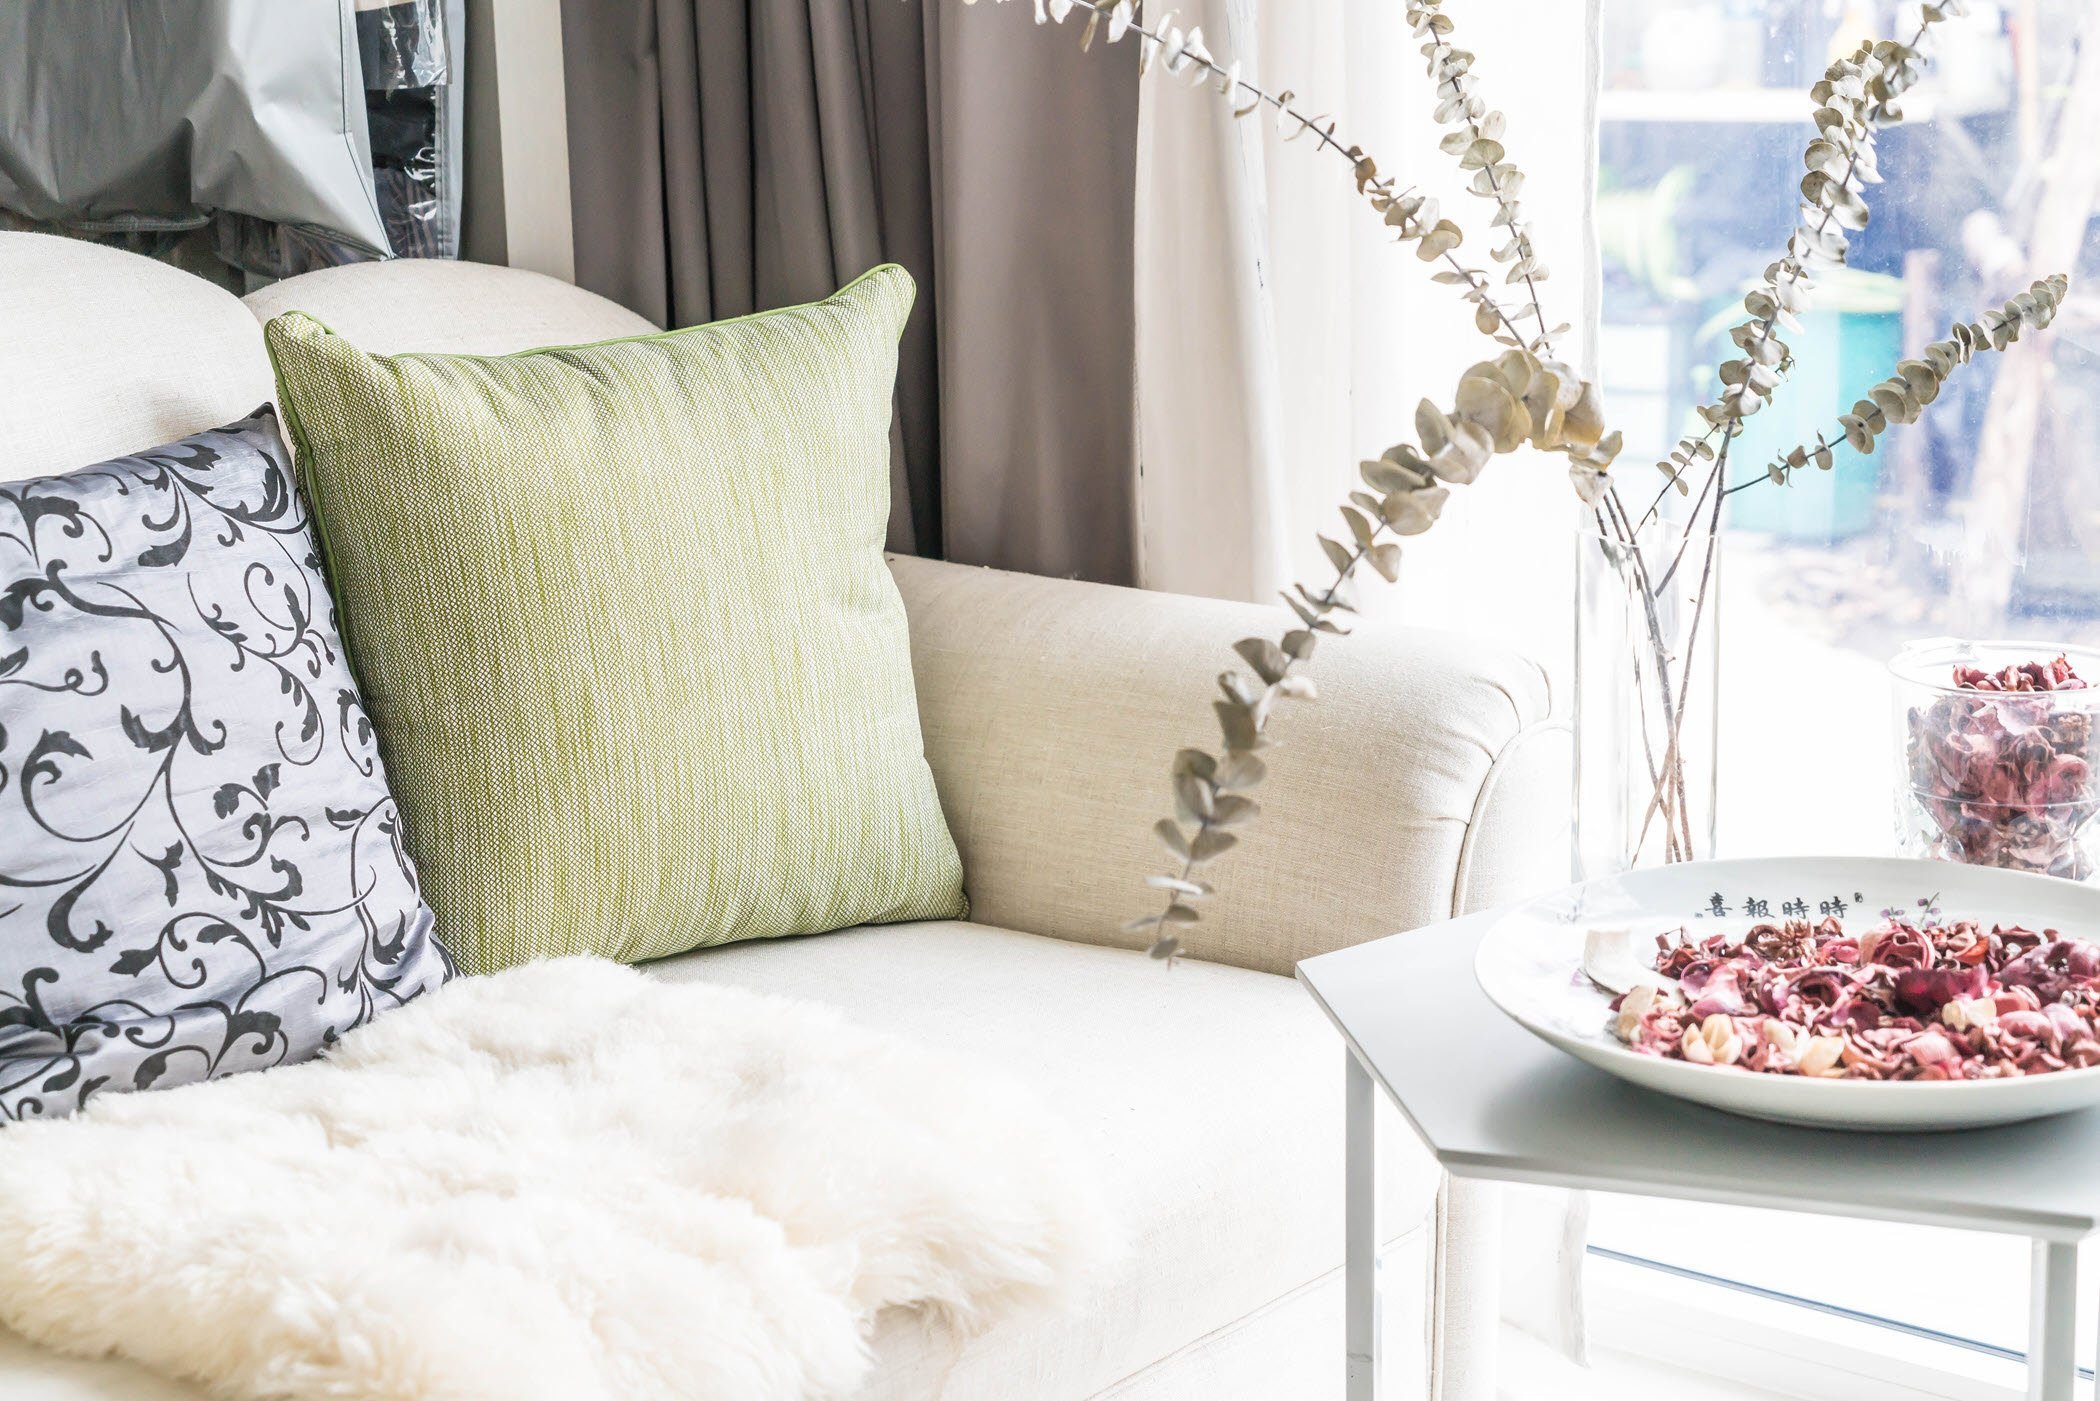 5 Easy Inexpensive Home Decorating Ideas For A Fresh New Look